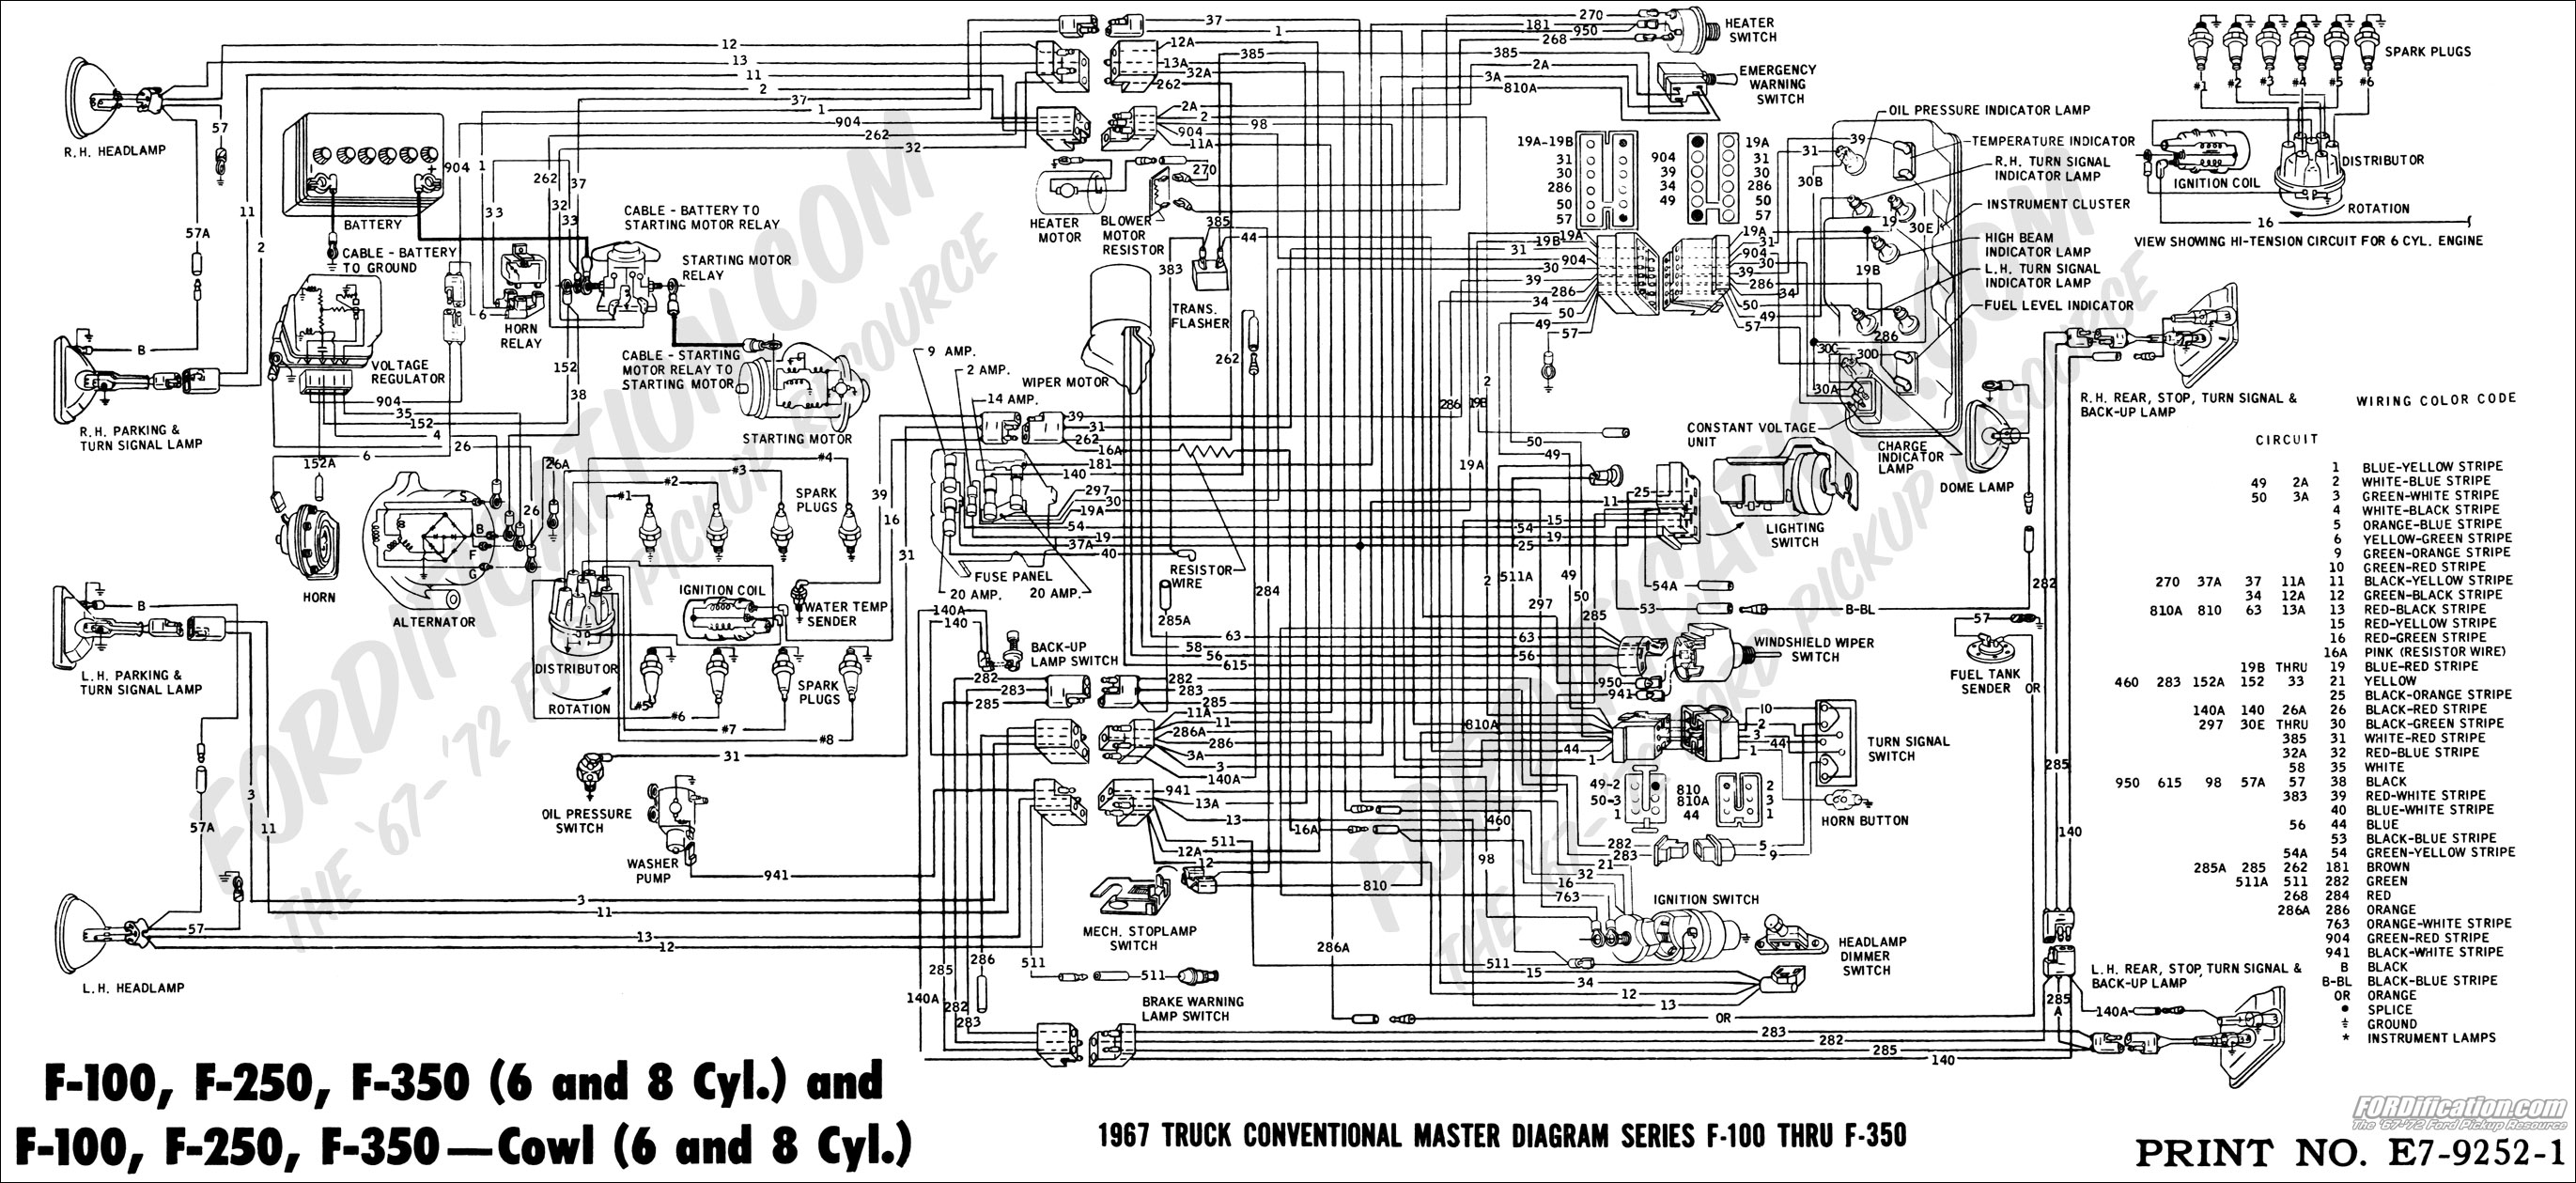 67masterdiagram 99 f150 wiring diagram 99 f150 stereo wiring diagram \u2022 wiring 1999 ford ranger xlt wiring diagrams at reclaimingppi.co